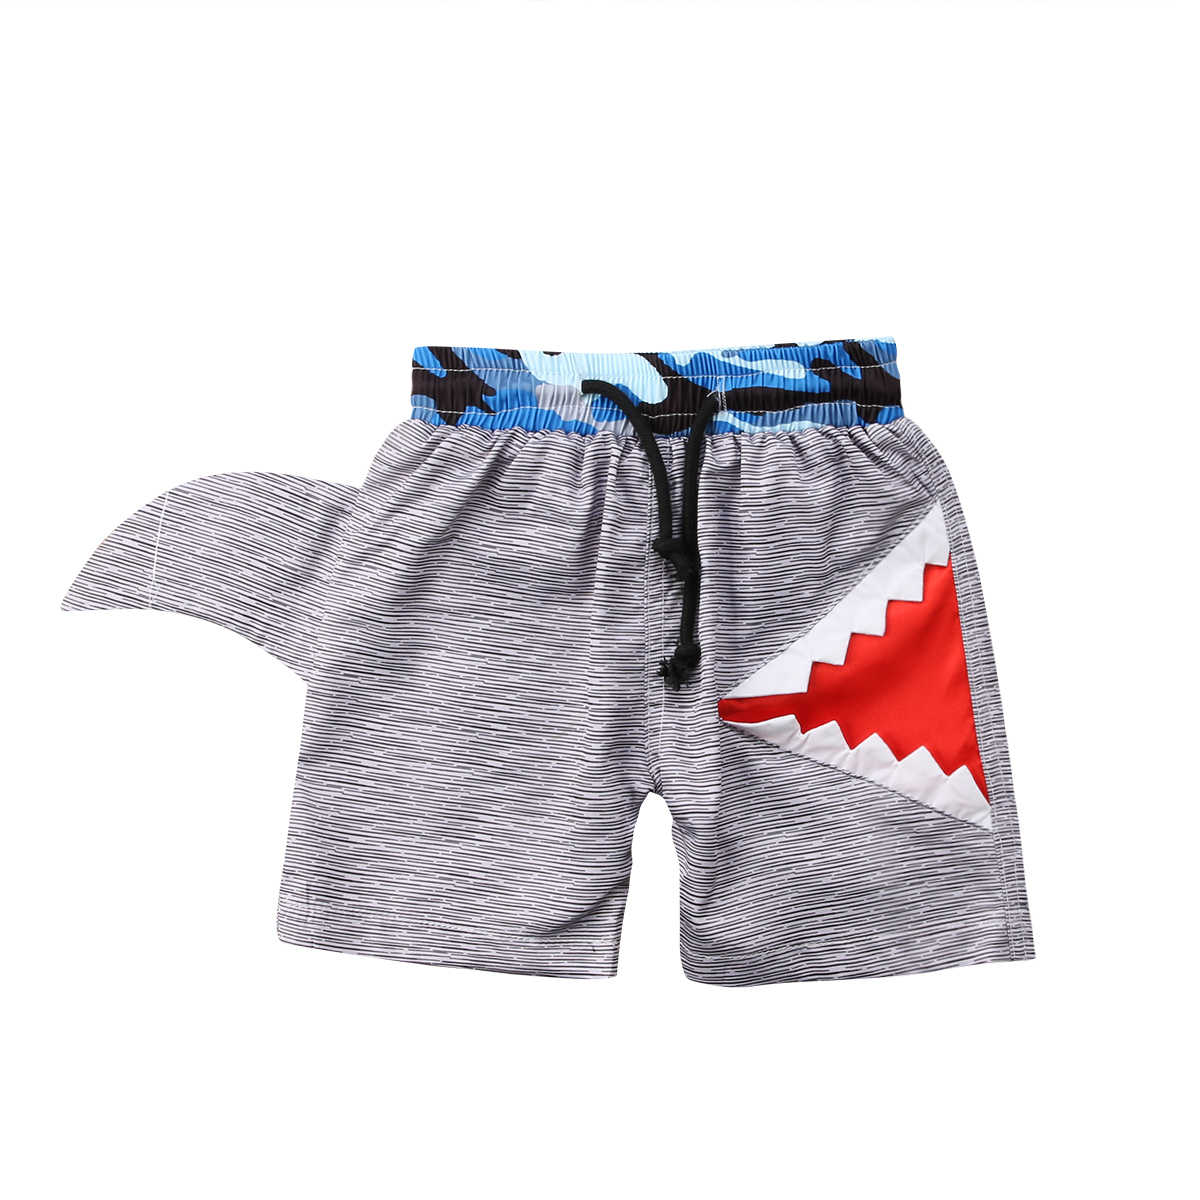 652a9943a8cce Toddler Infant Newborn Kids Shorts Baby Boys Swimming Trunks Swimwear  Surfing Bathers Beach Pants Shark Bathing